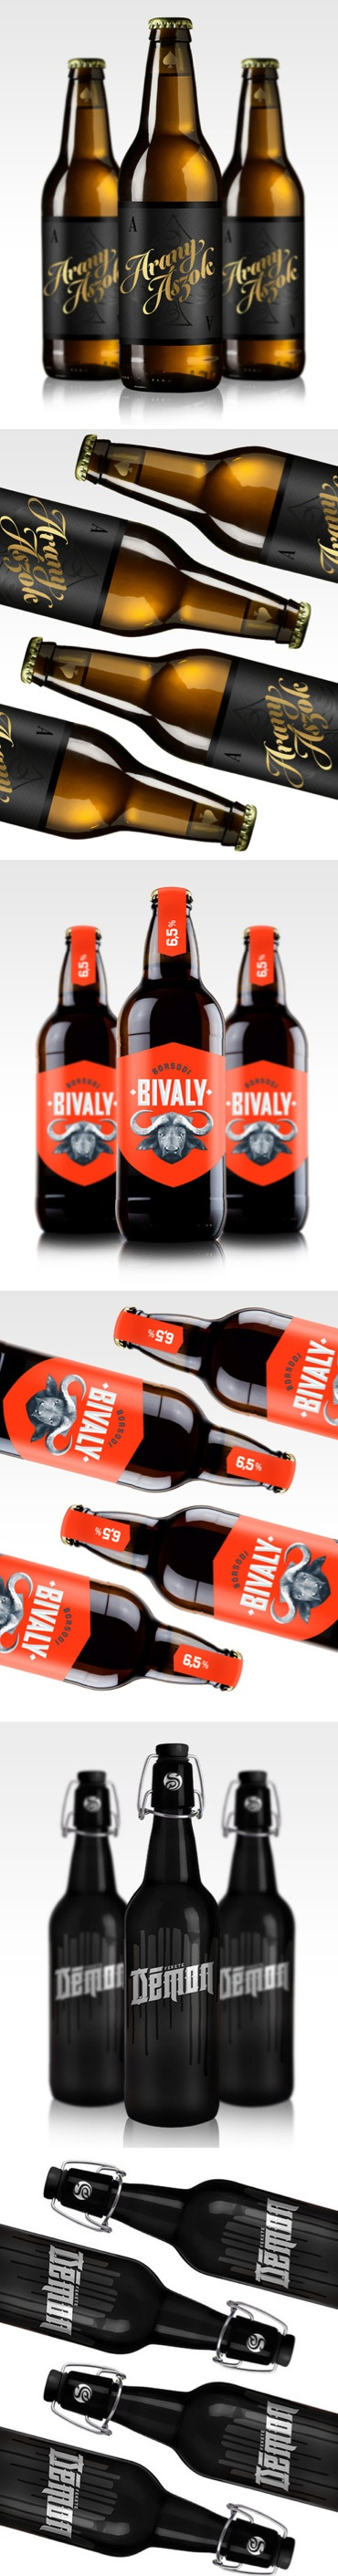 Hungarian Beers redesign by hungarian based designer Csaba Bernáth